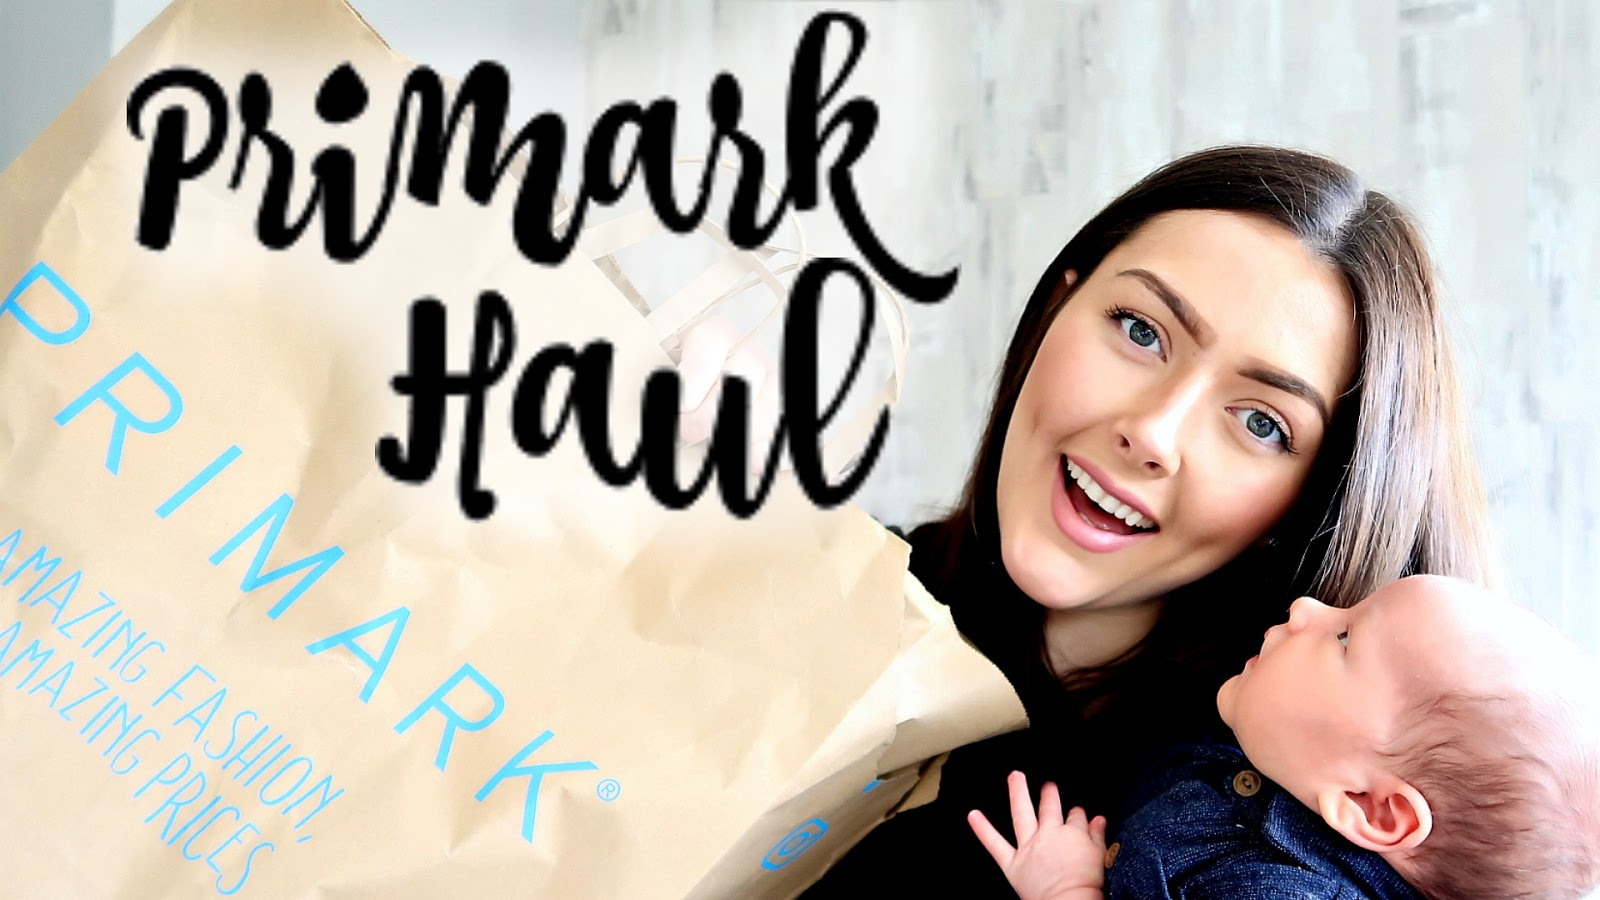 PRIMARK FASHION HAUL